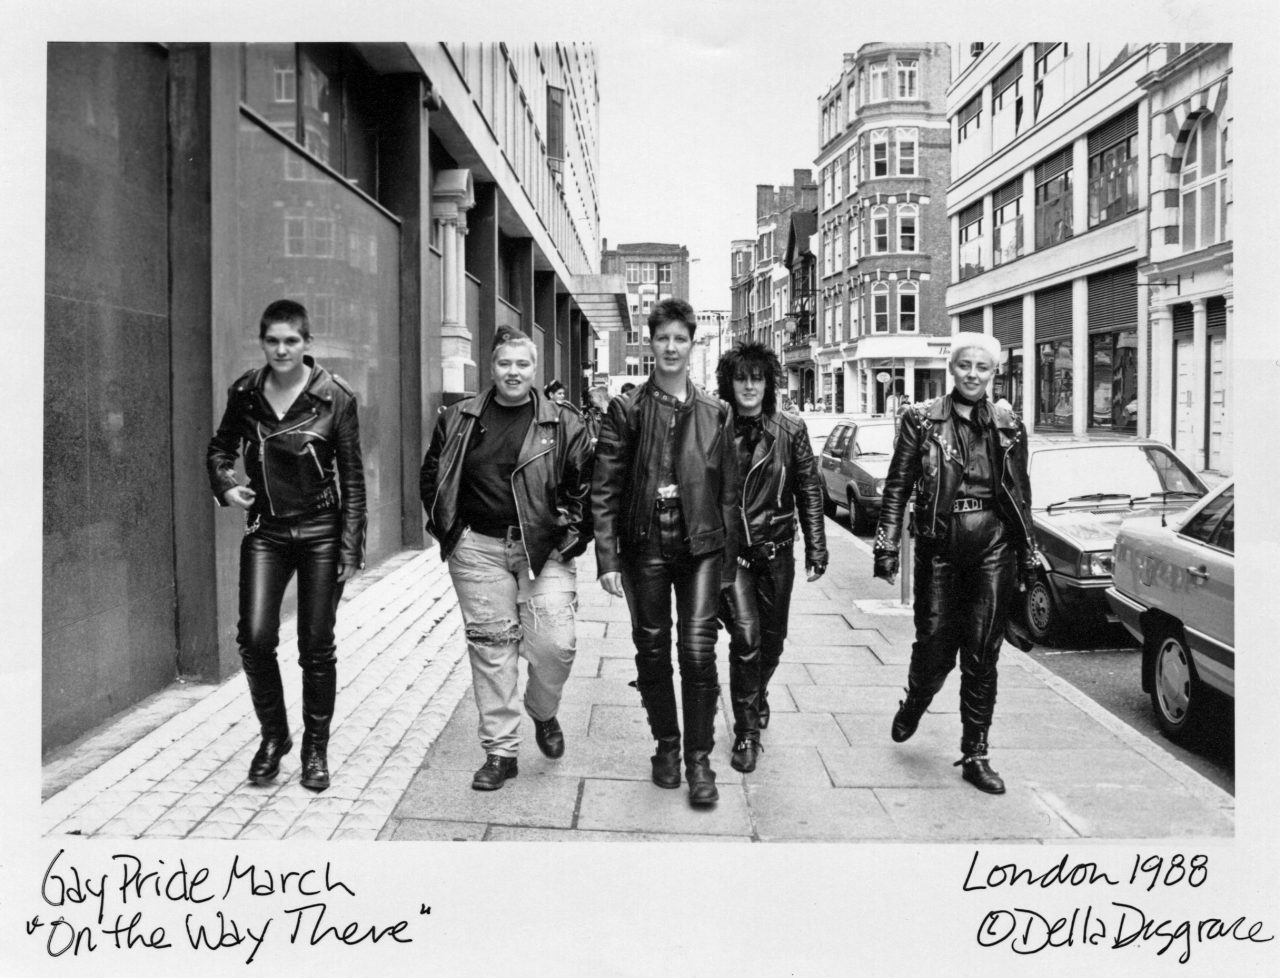 """Credit: Gay Pride March """"On the Way There"""" London 1988 (c) Della Disgrace courtesy of Rebel Dykes"""